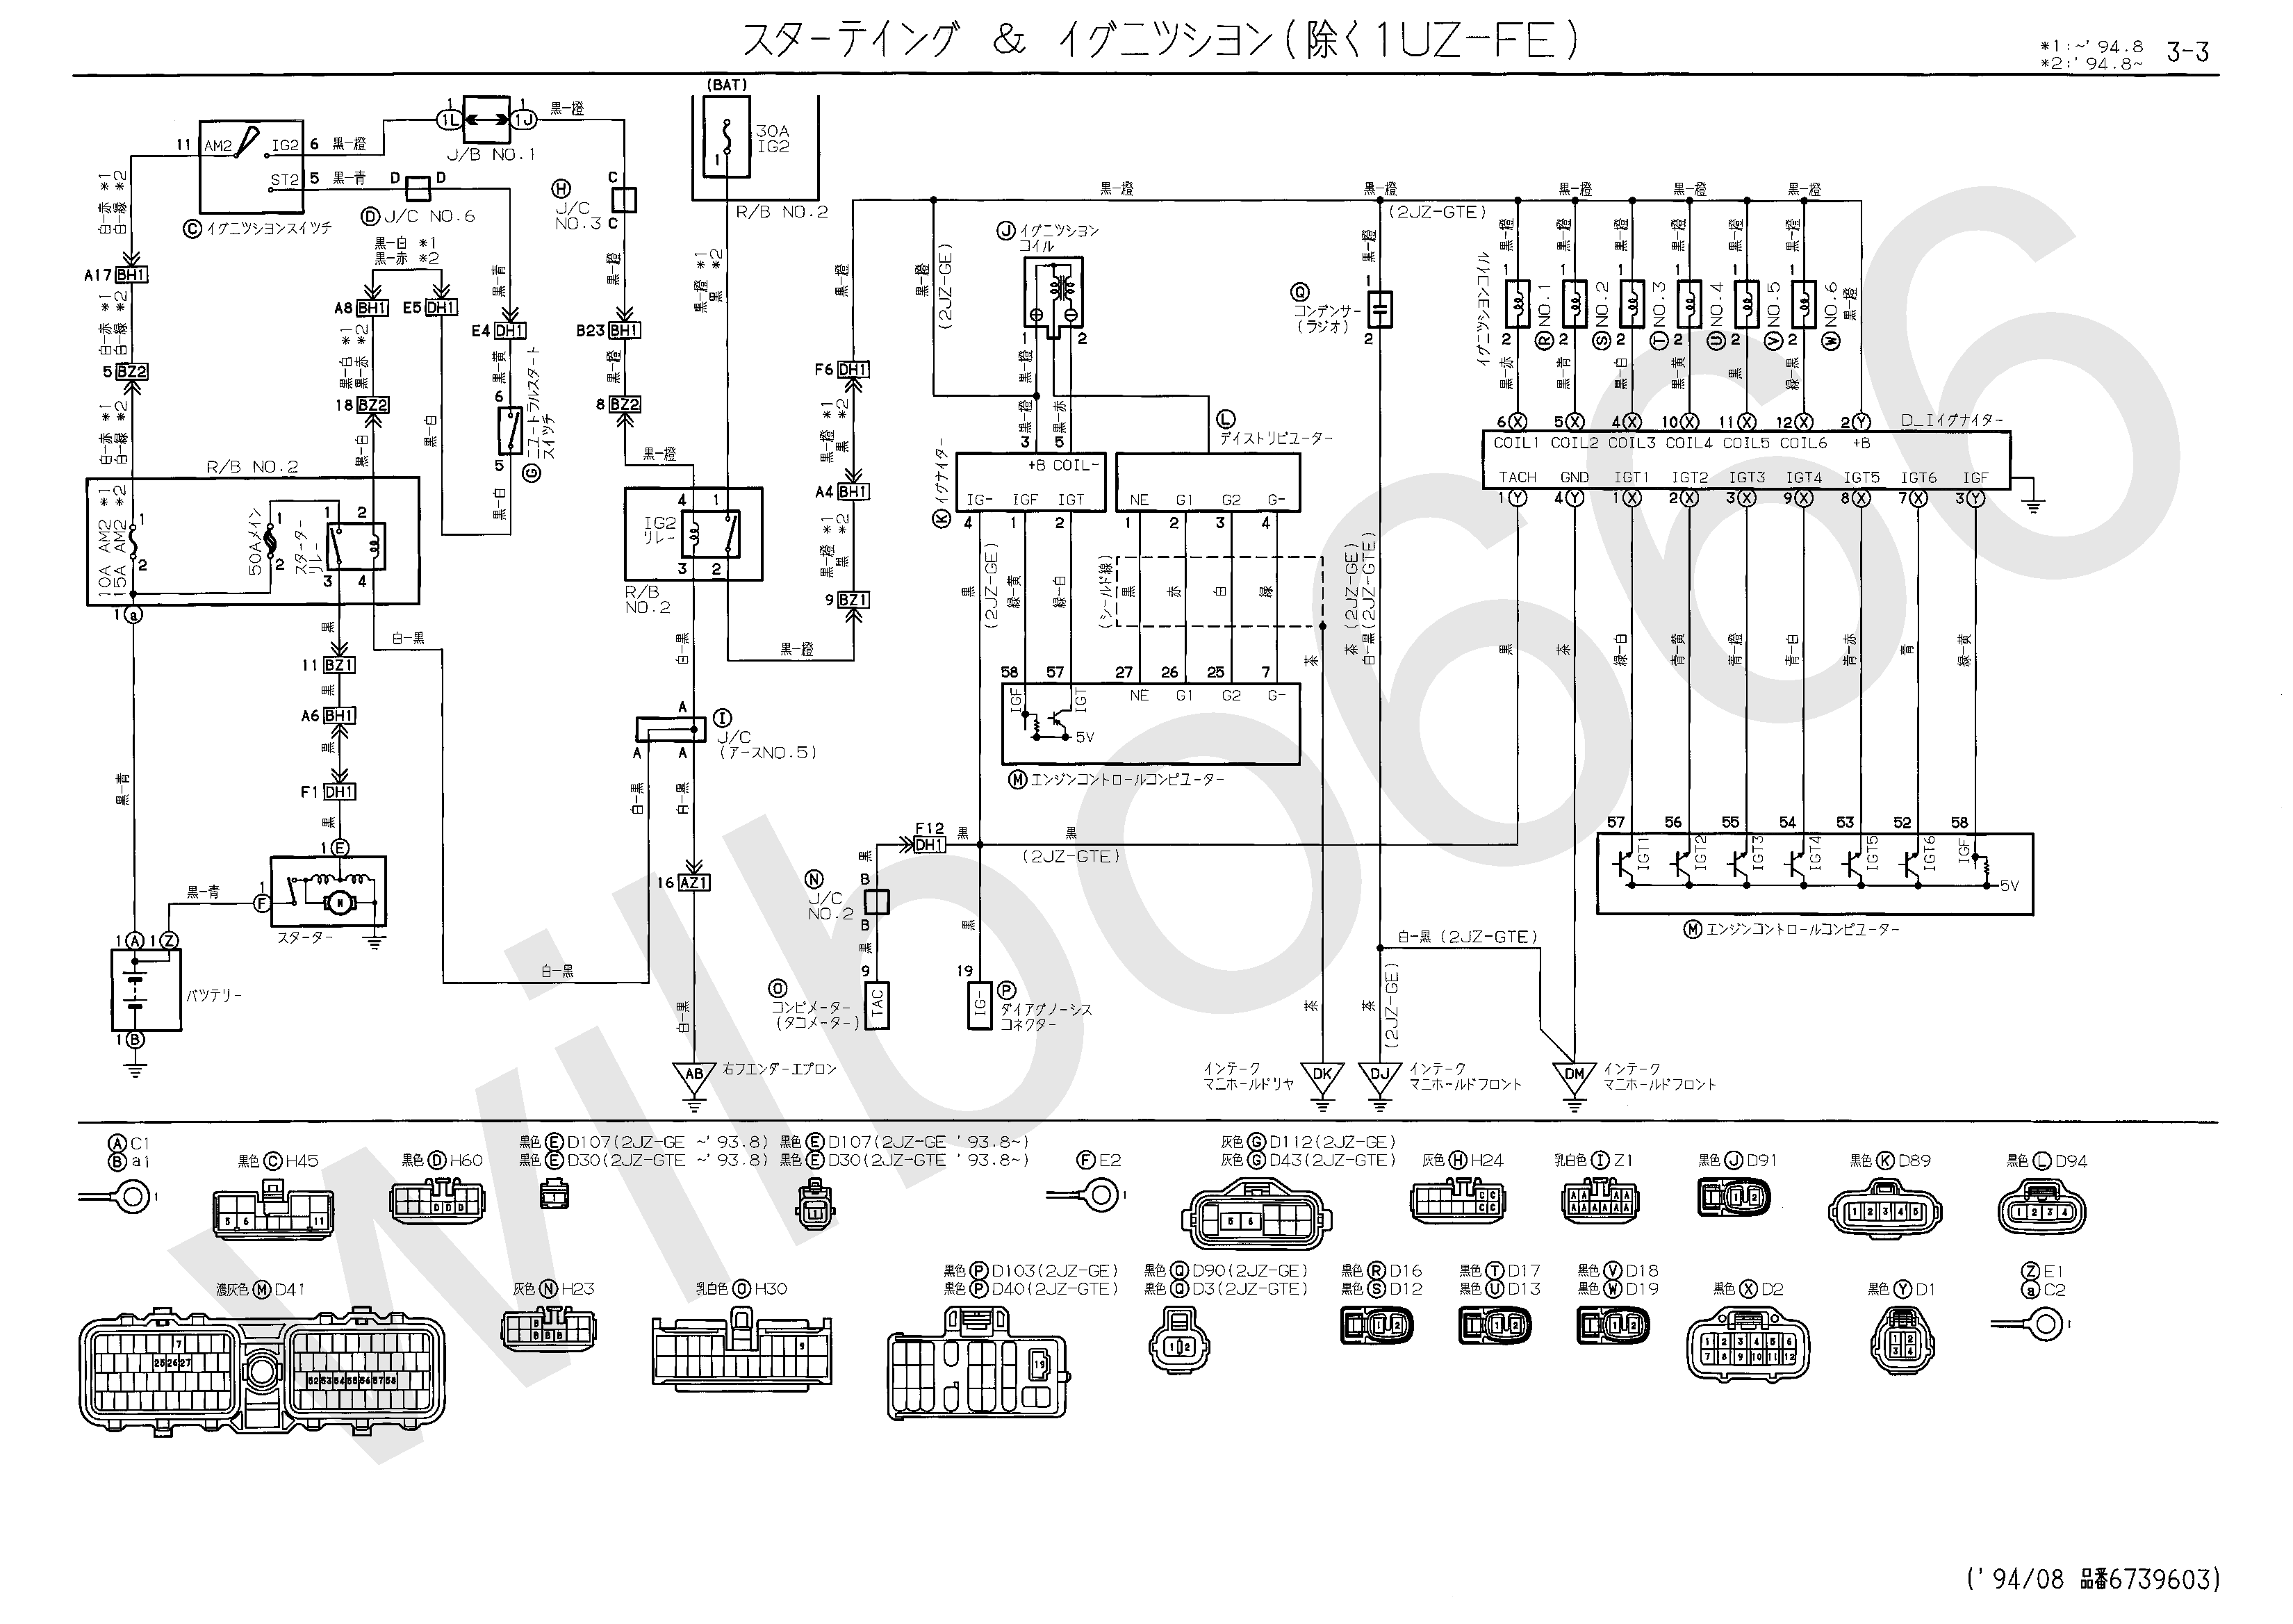 JZS14%23%2C UZS14%23 Electrical Wiring Diagram 6739604 3 3?resize\\\\\\\\\\\\\\\\\\\\\\\\\\\\\\\\\\\\\\\\\\\\\\\\\\\\\\\\\\\\\\\\\\\\\\\\\\\\\\\\\\\\\\\\\\\\\\\\\\\\\\\\\\\\\\\\\\\\\\\\\\\\\\\\\\\\\\\\\\\\\\\\\\\\\\\\\\\\\\\\\\\\\\\\\\\\\\\\\\\\\\\\\\\\\\\\\\\\\\\\\\\\\\\\\\\\\\\\\\\\\\\\\\\\\\\\\\\\\\\\\\\\\\\\\\\\\\\\\\\\\\\\\\\\\\\\\\\\\\\\\\\\\\\\\\\\\\\\\\\\\\\\\\\\\\\\\\\\\\\\\\\\\\\\\\\\\\\\\\\\\\\\\\\\\\\\\\\\\\\\\\\\\\\\\\\\\\\\\\\\\\\\\\\\\\\\\\\\\\\\\\\\\\\\\\\\\\\\\\\\\\\\\\\\\\\\\\\\\\\\\\\\\\\\\=665%2C471 rb26 wiring diagram rb26 wiring harness diagram \u2022 wiring diagrams  at eliteediting.co